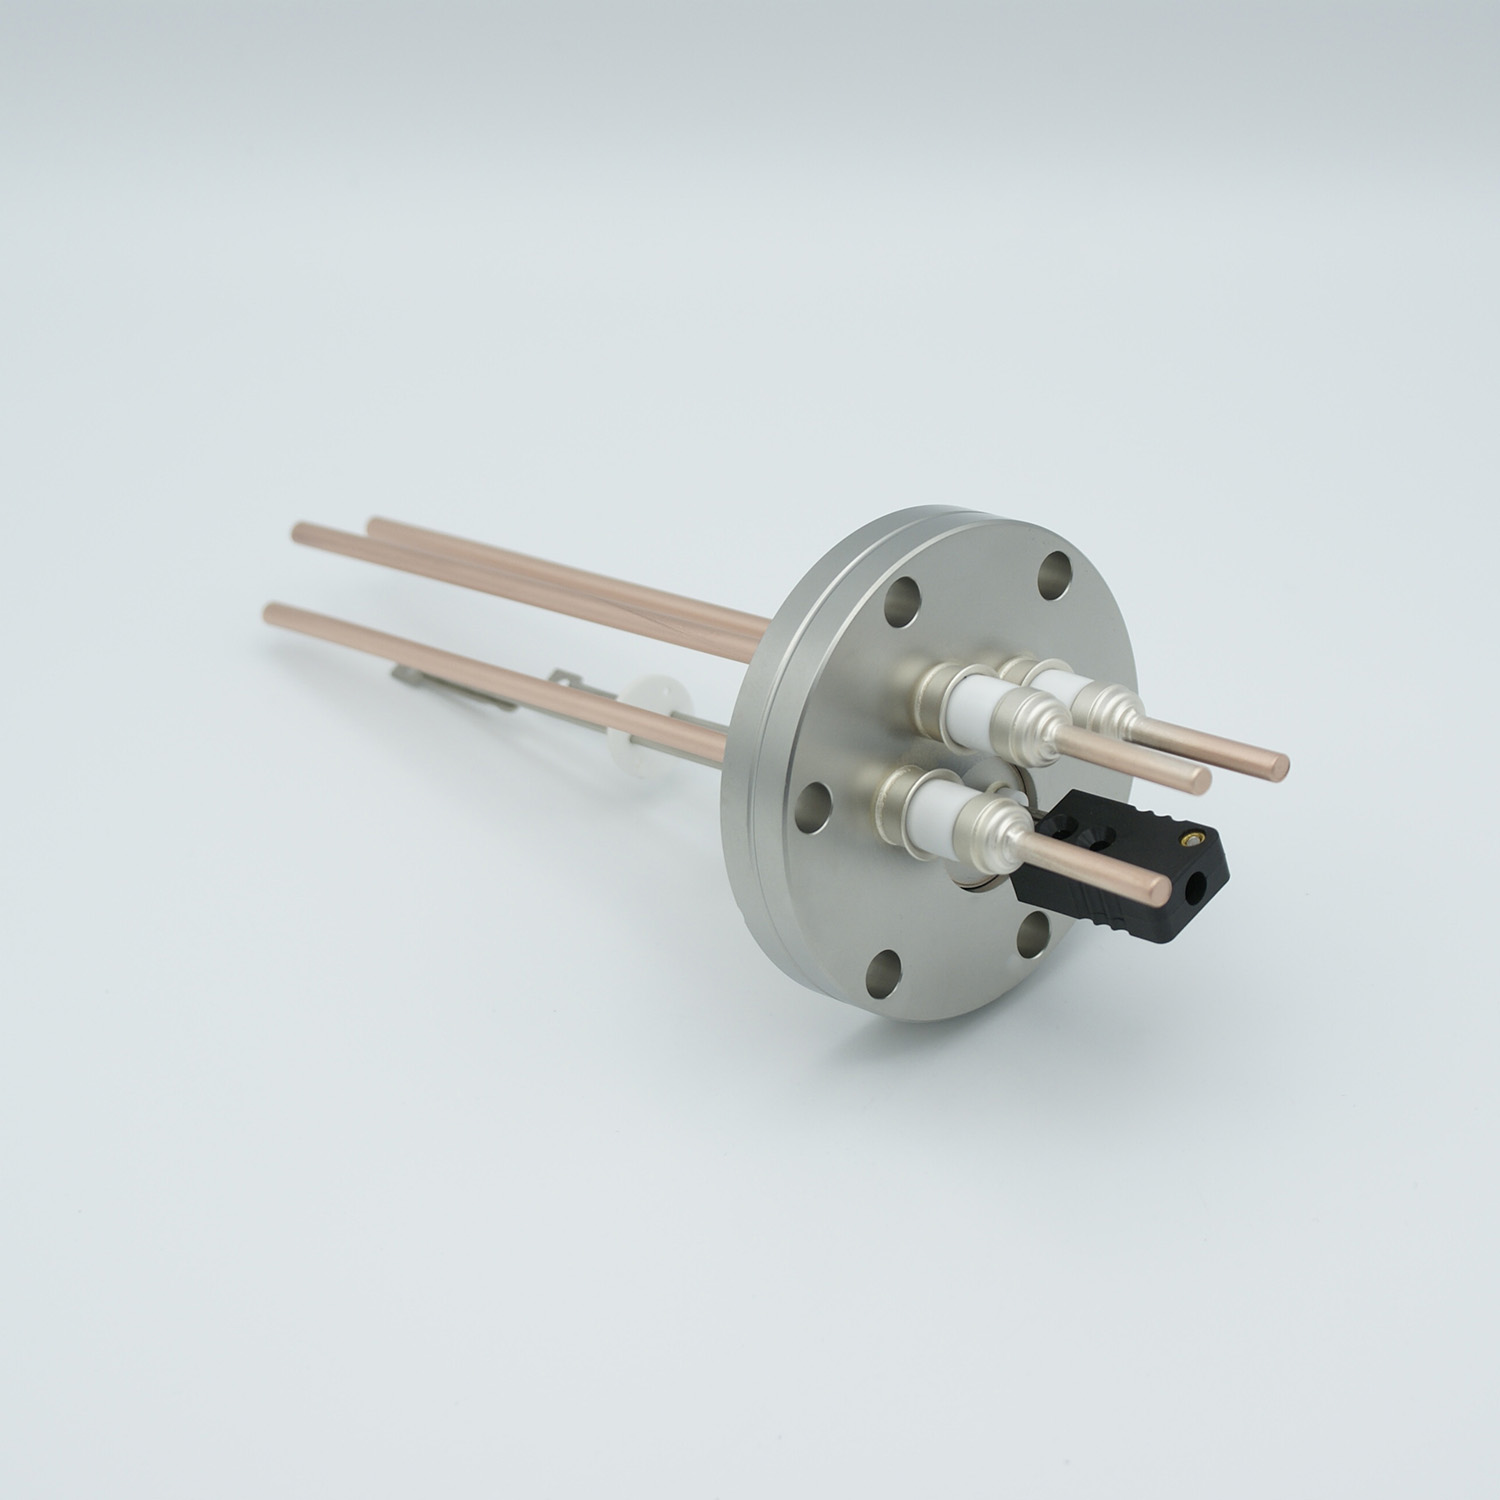 1 pair Thermocouple type-J and 3 copper power pins feedthrough 5000V, with TC connectors included, DN40CF flange